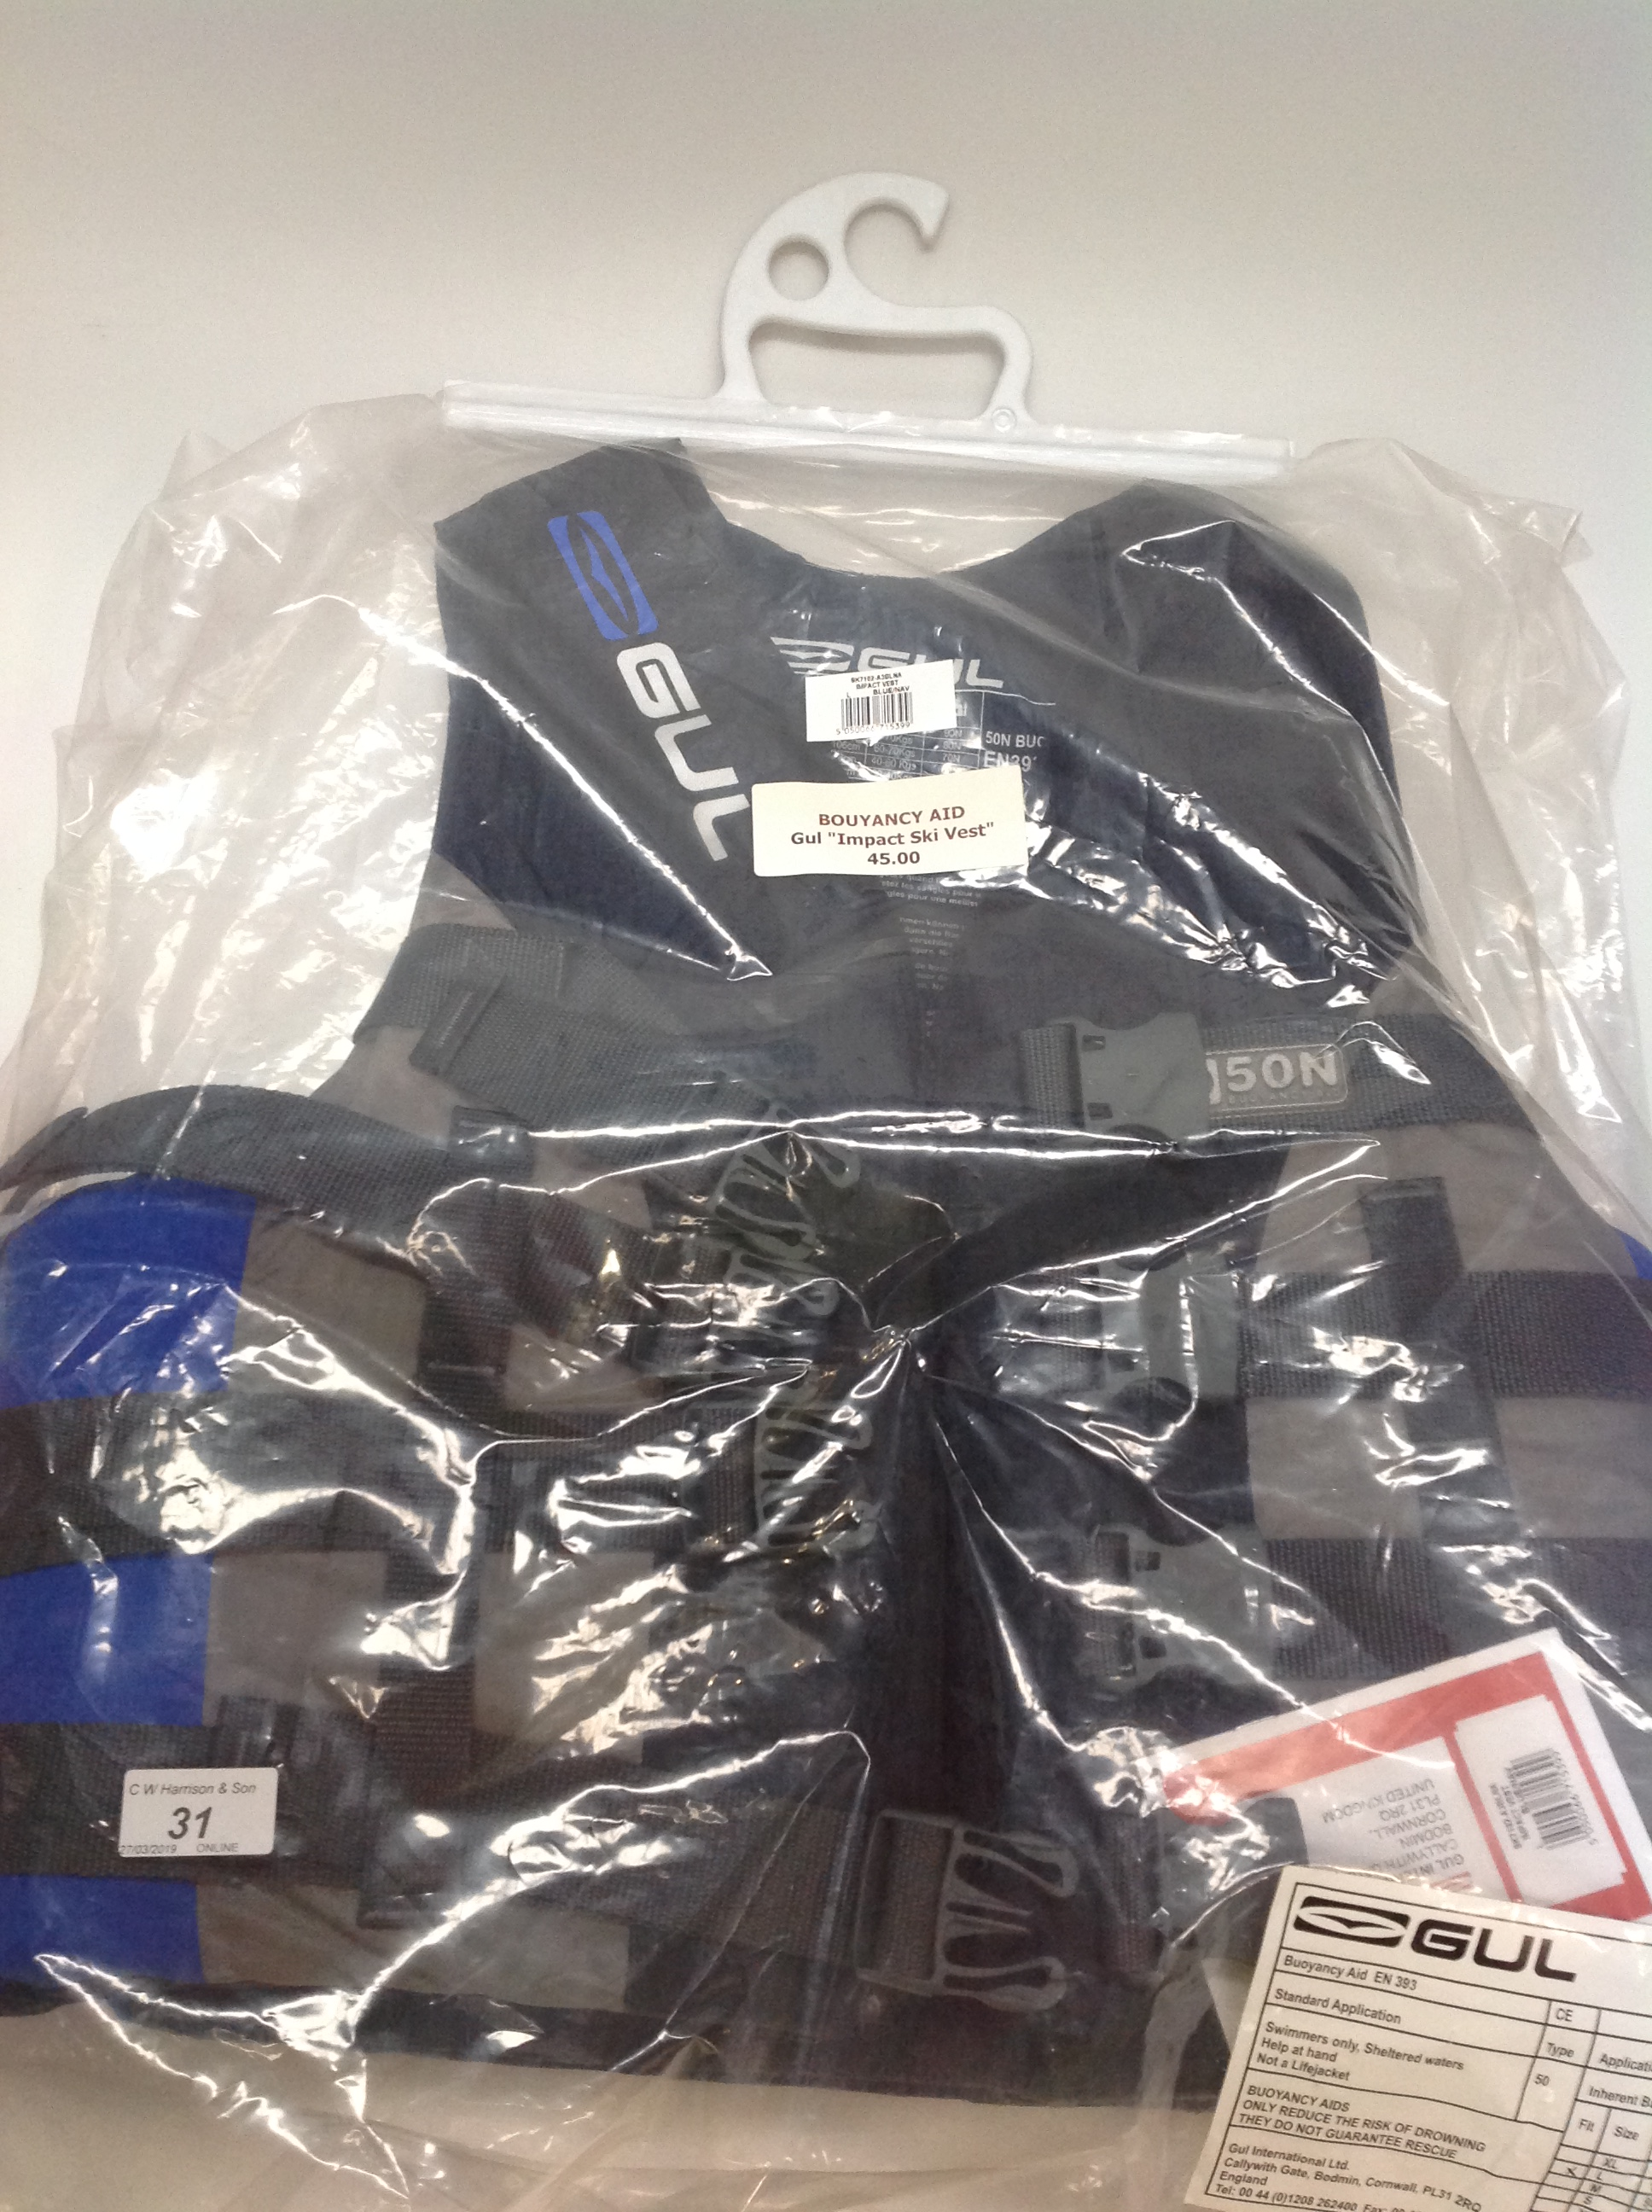 Lot 31 - Gul Impact ski vest buoyancy aid in grey and blue - size L RRP £45